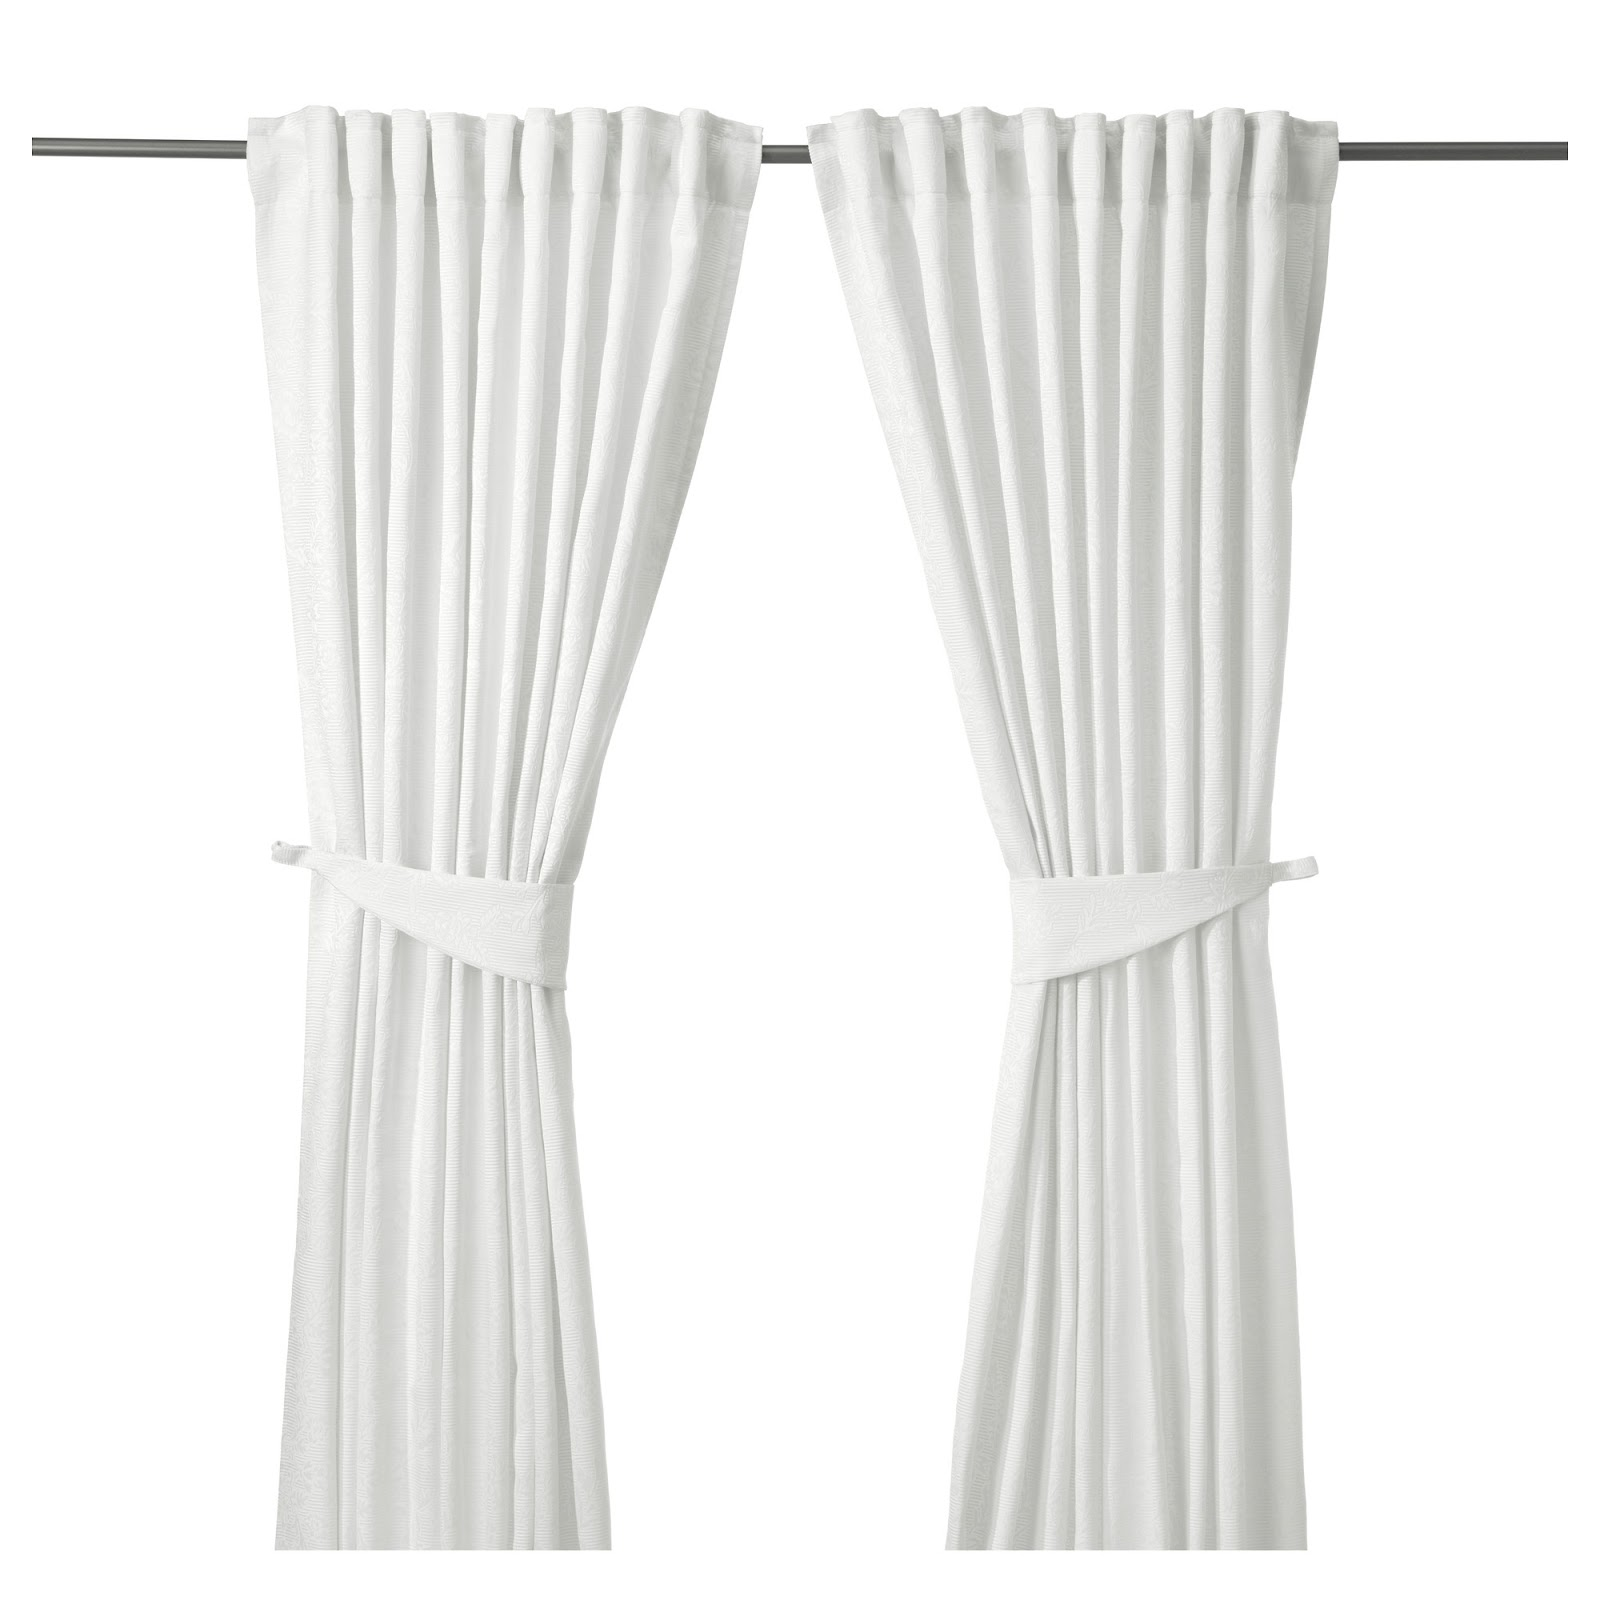 How To Style Curtains Swag A Curtain Take Measurements For Window